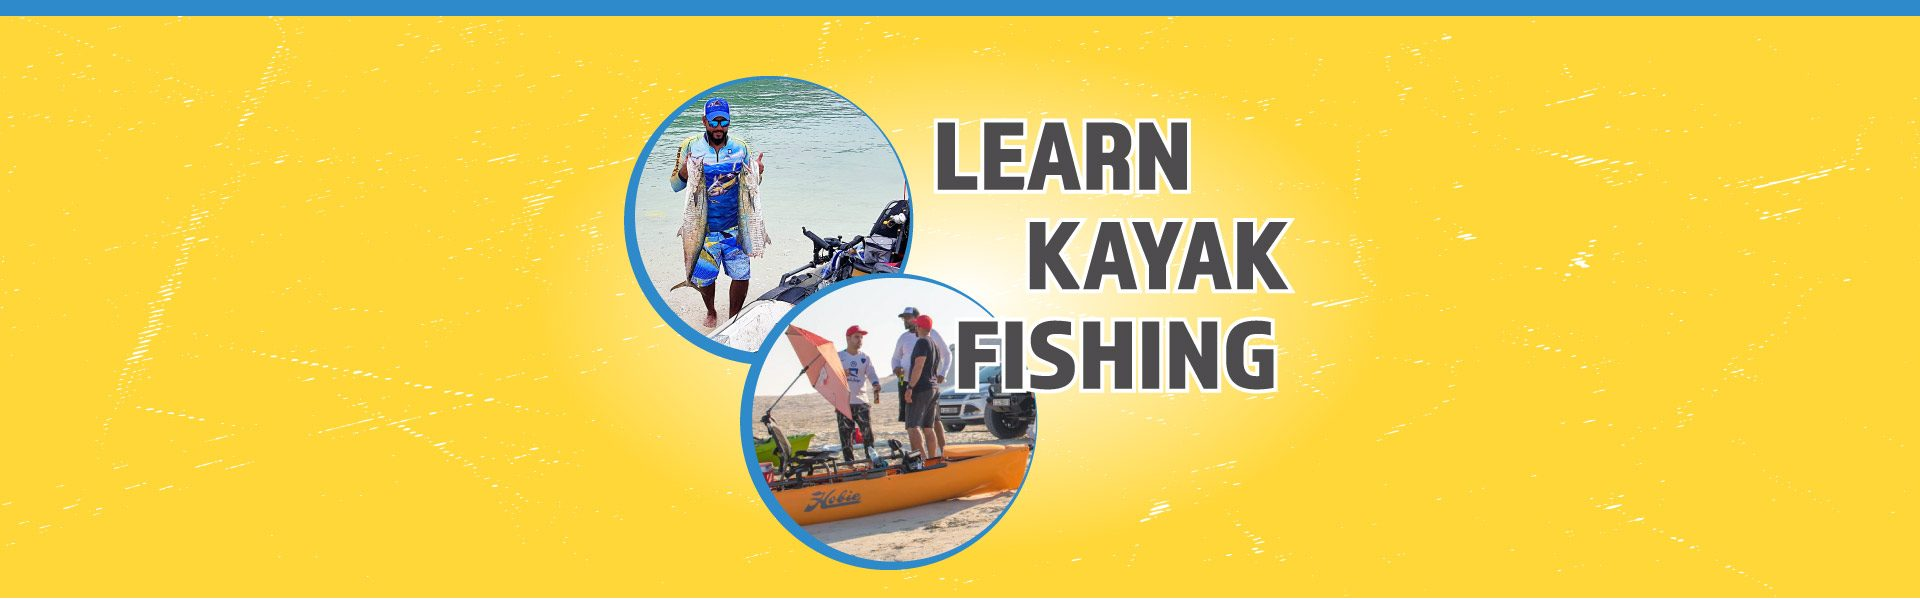 Fishing-kayak-courses-in-Dubai